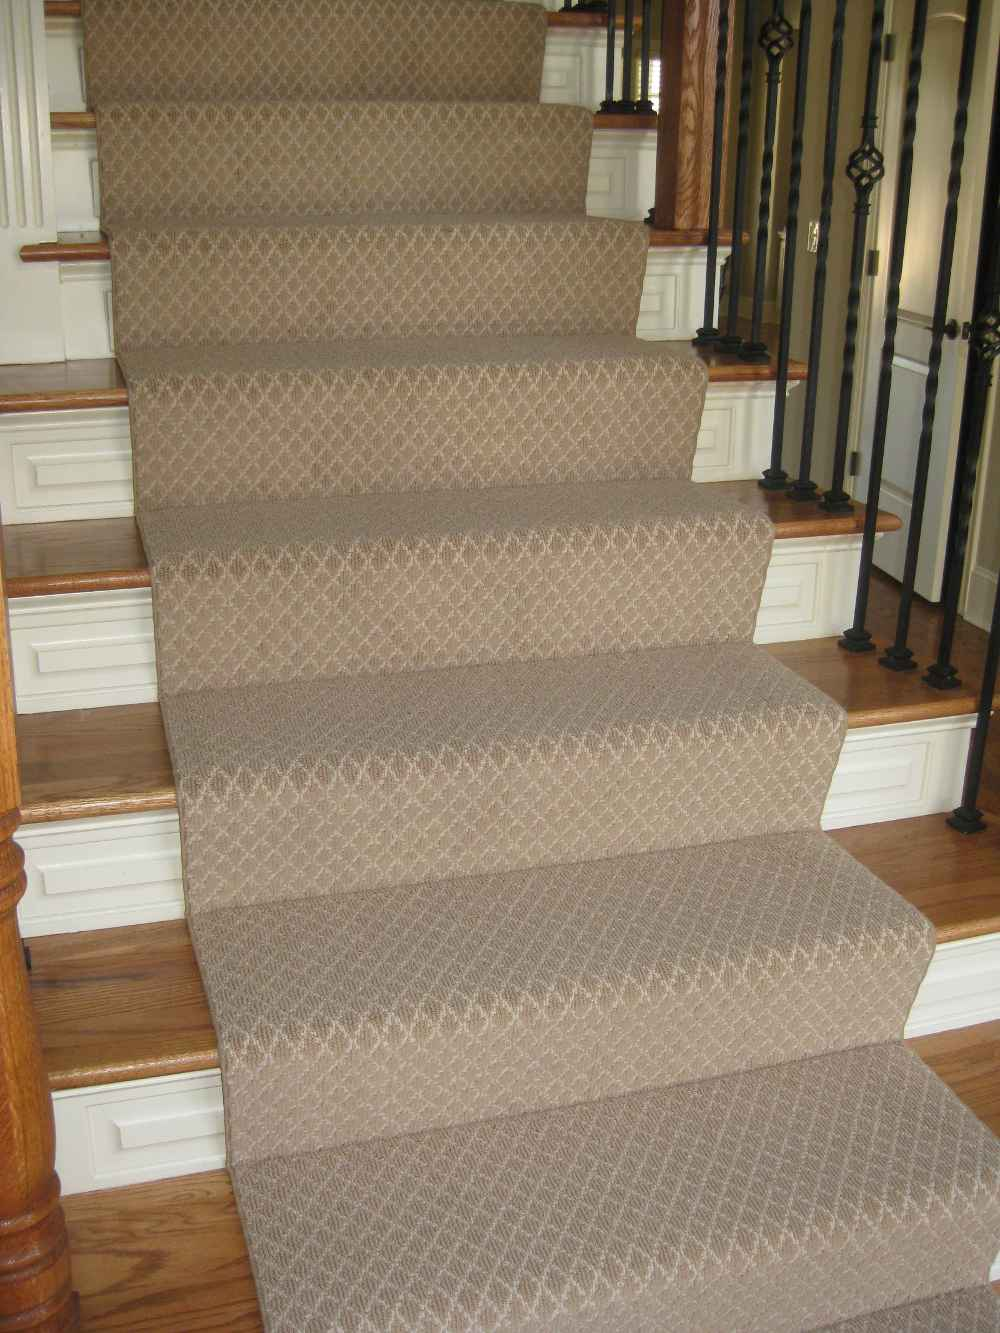 Stair Runner Carpet By The Foot